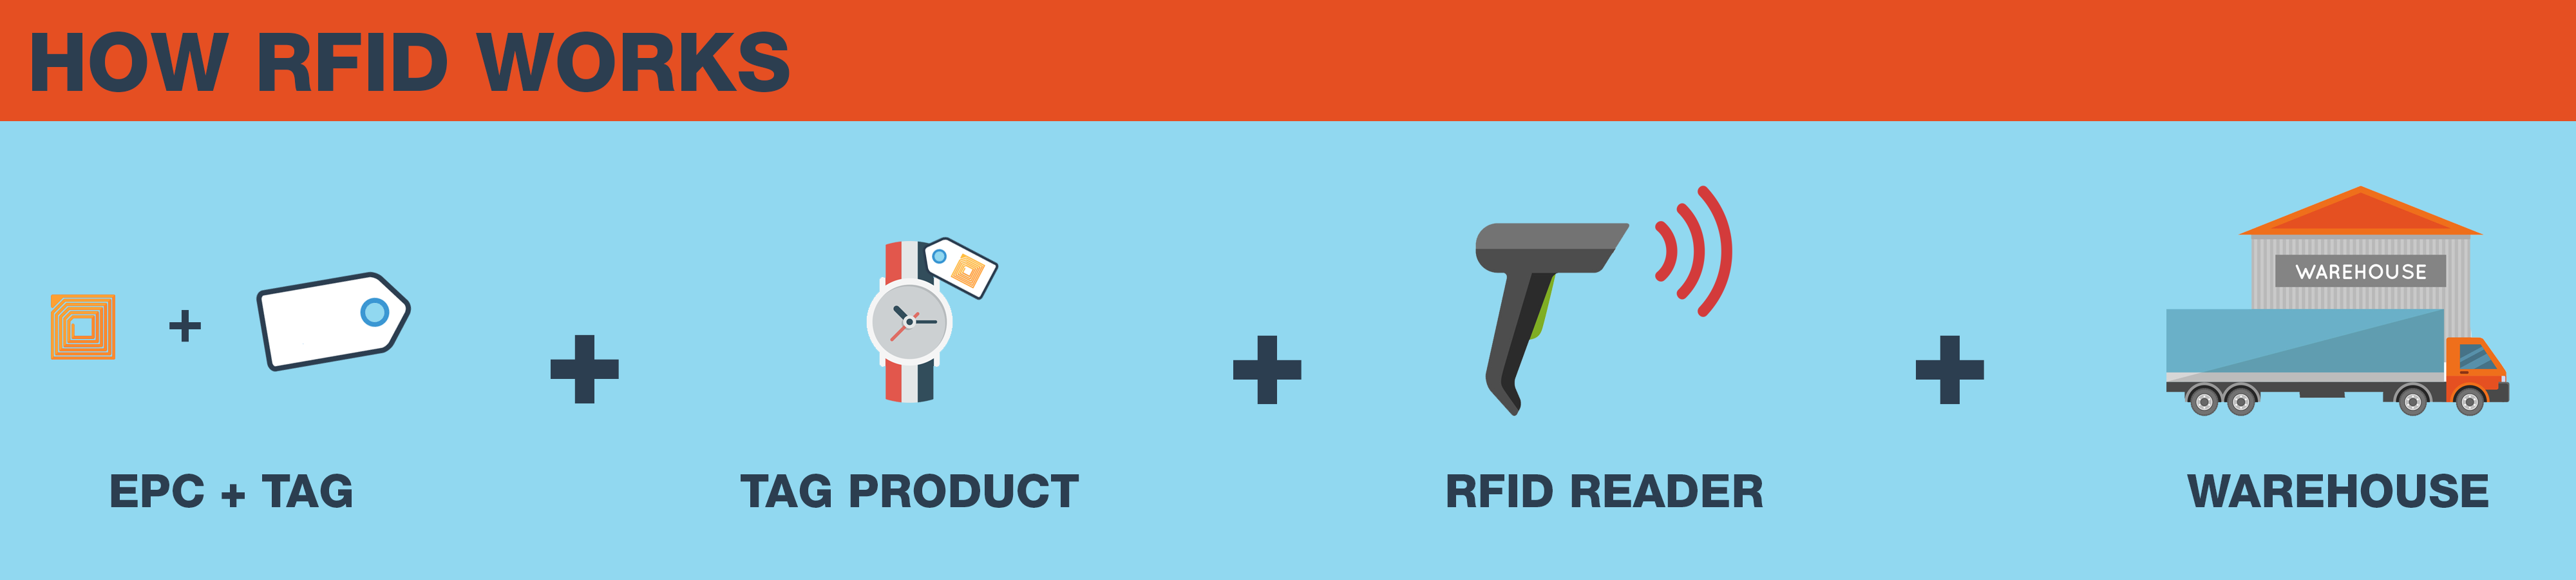 How RFID works for retailers and retail manufacturers.